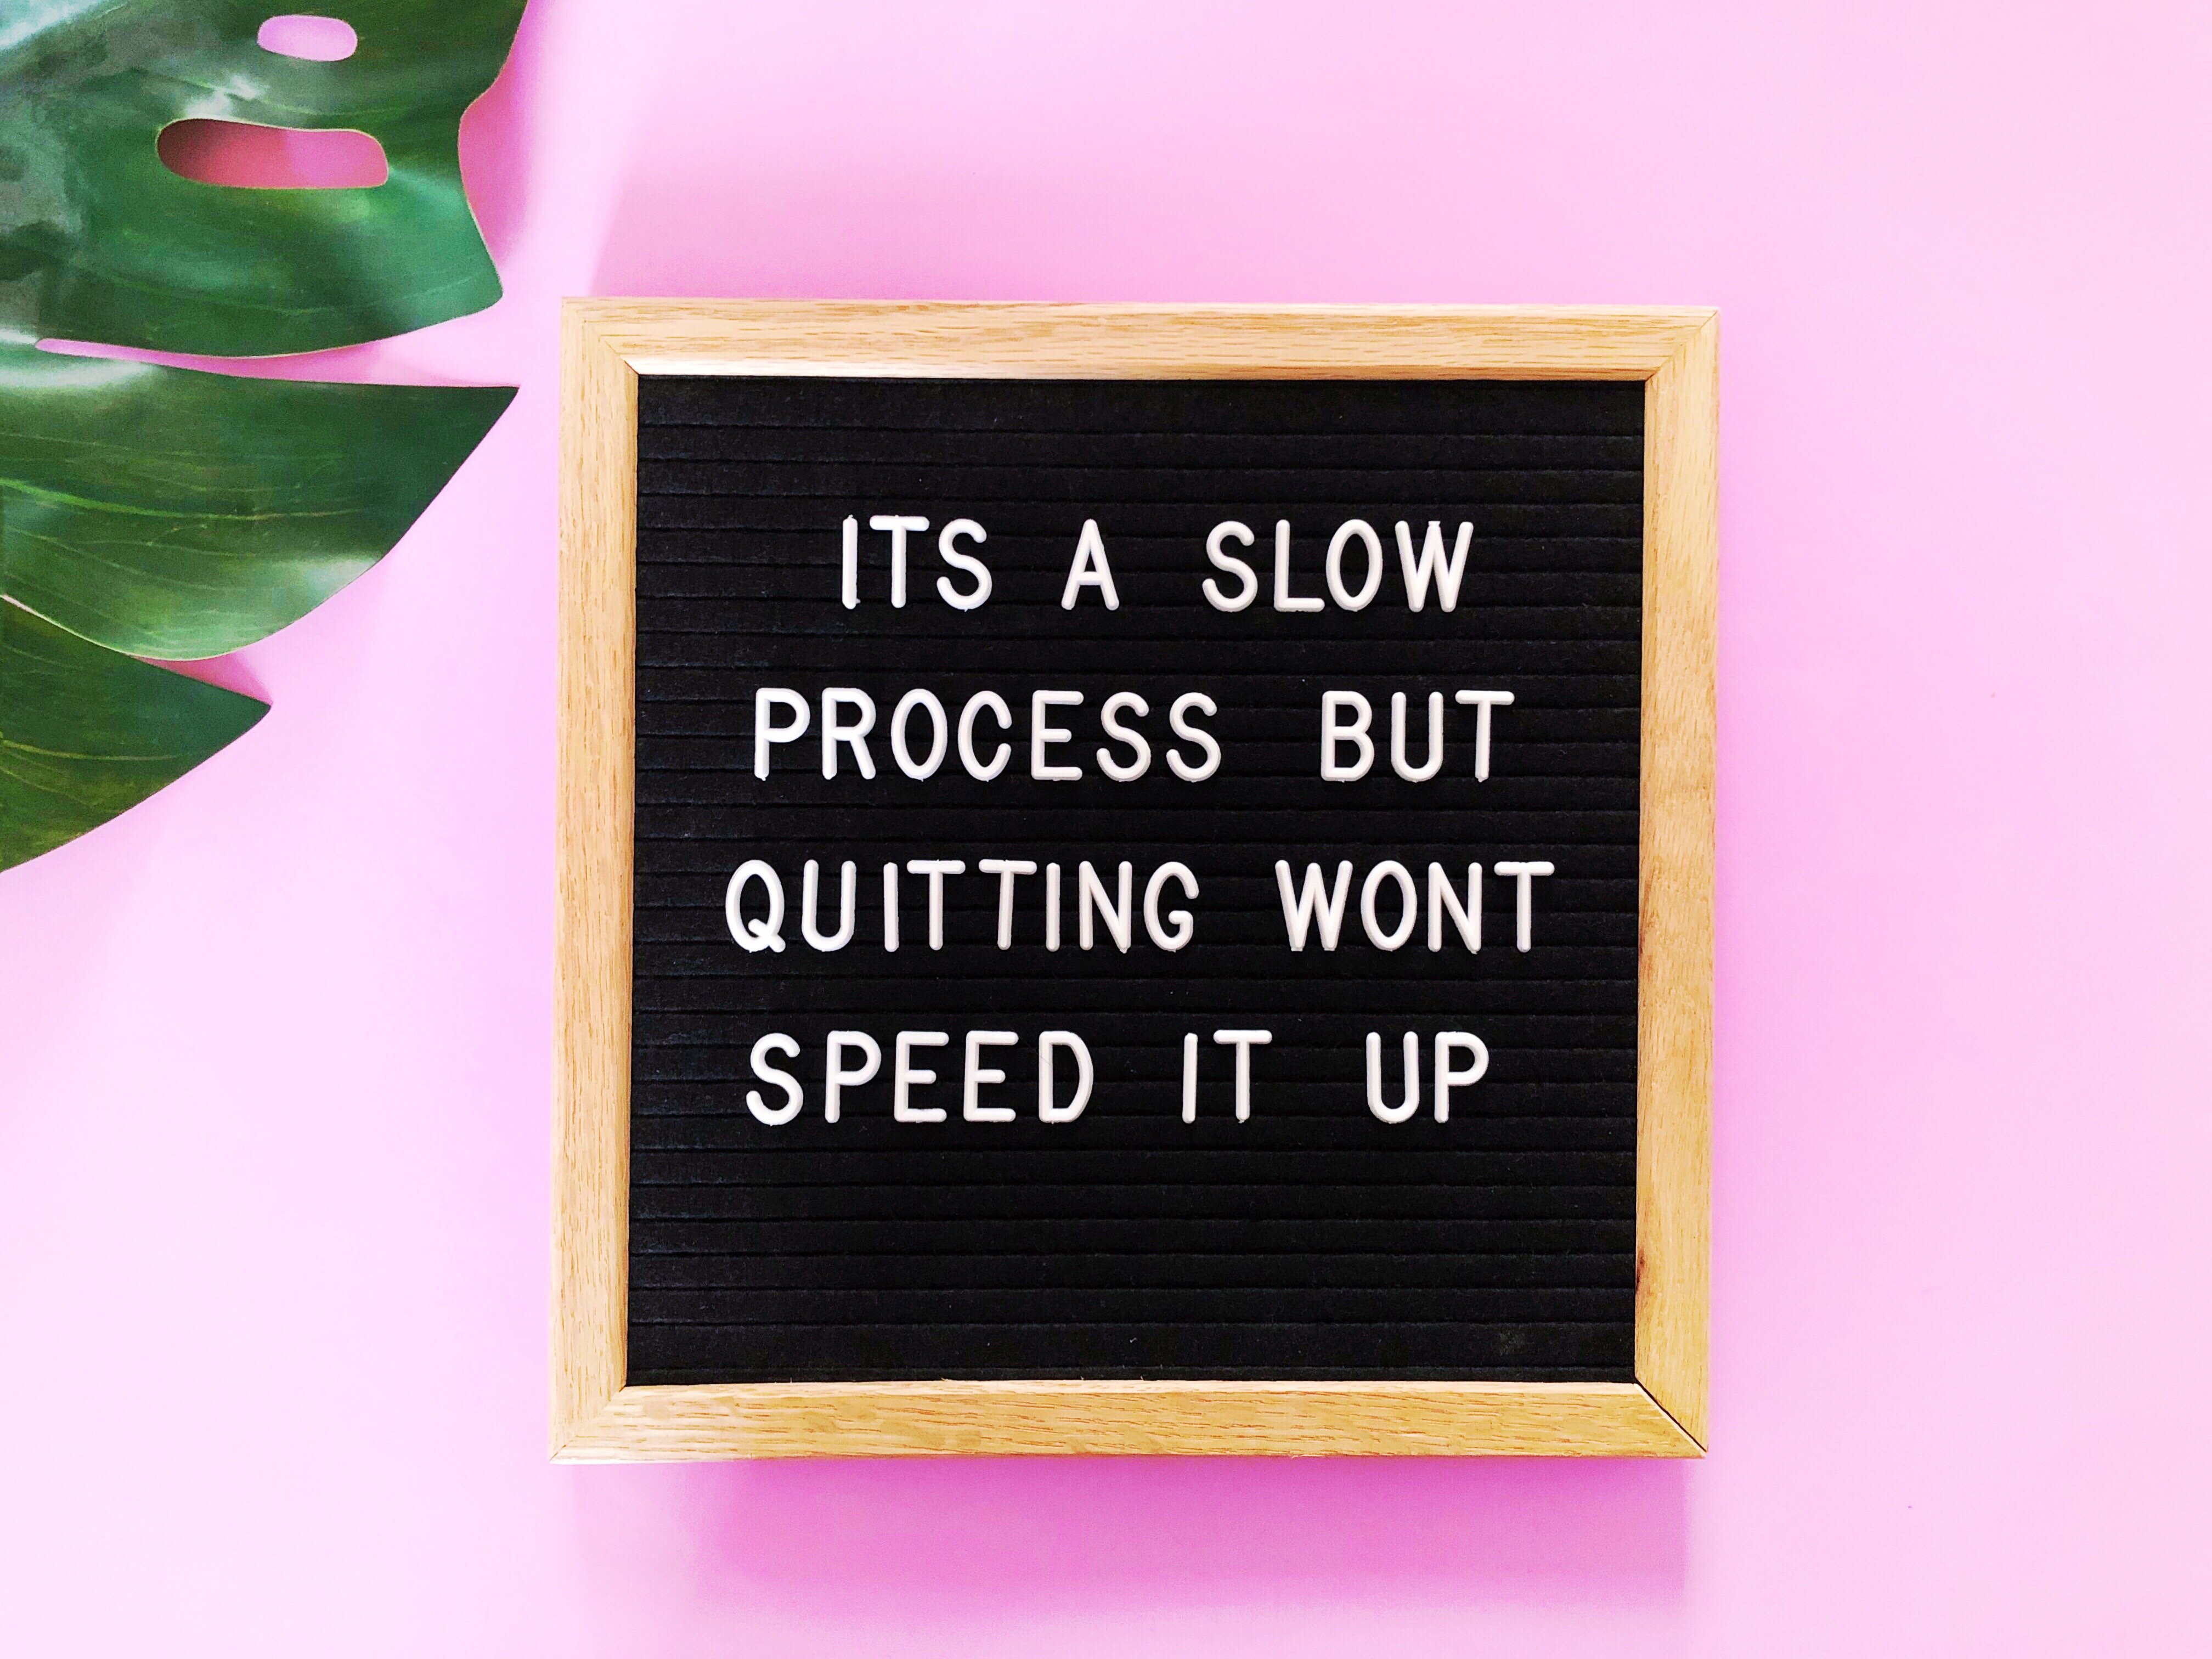 it-s-a-slow-process-but-quitting-won-t-speed-it-up-quote-quotes-message-board-letter-board-blackboard_t20_0x8bQ6